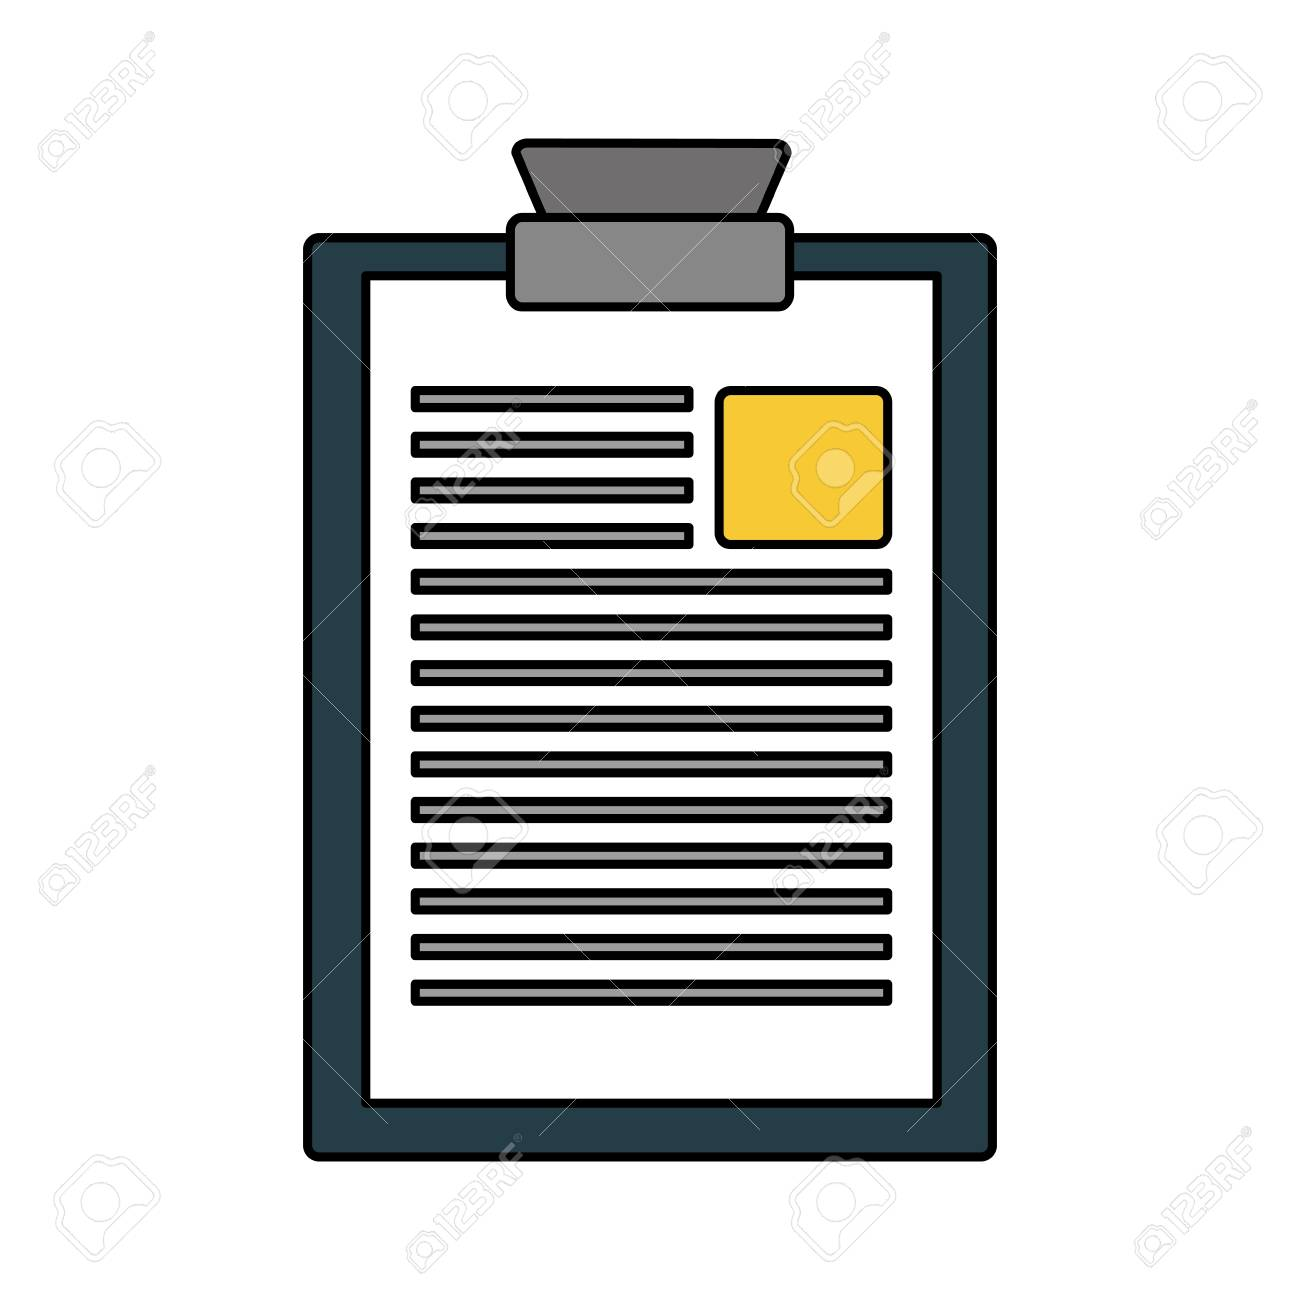 clipboard report document on white background vector illustration - 125272973